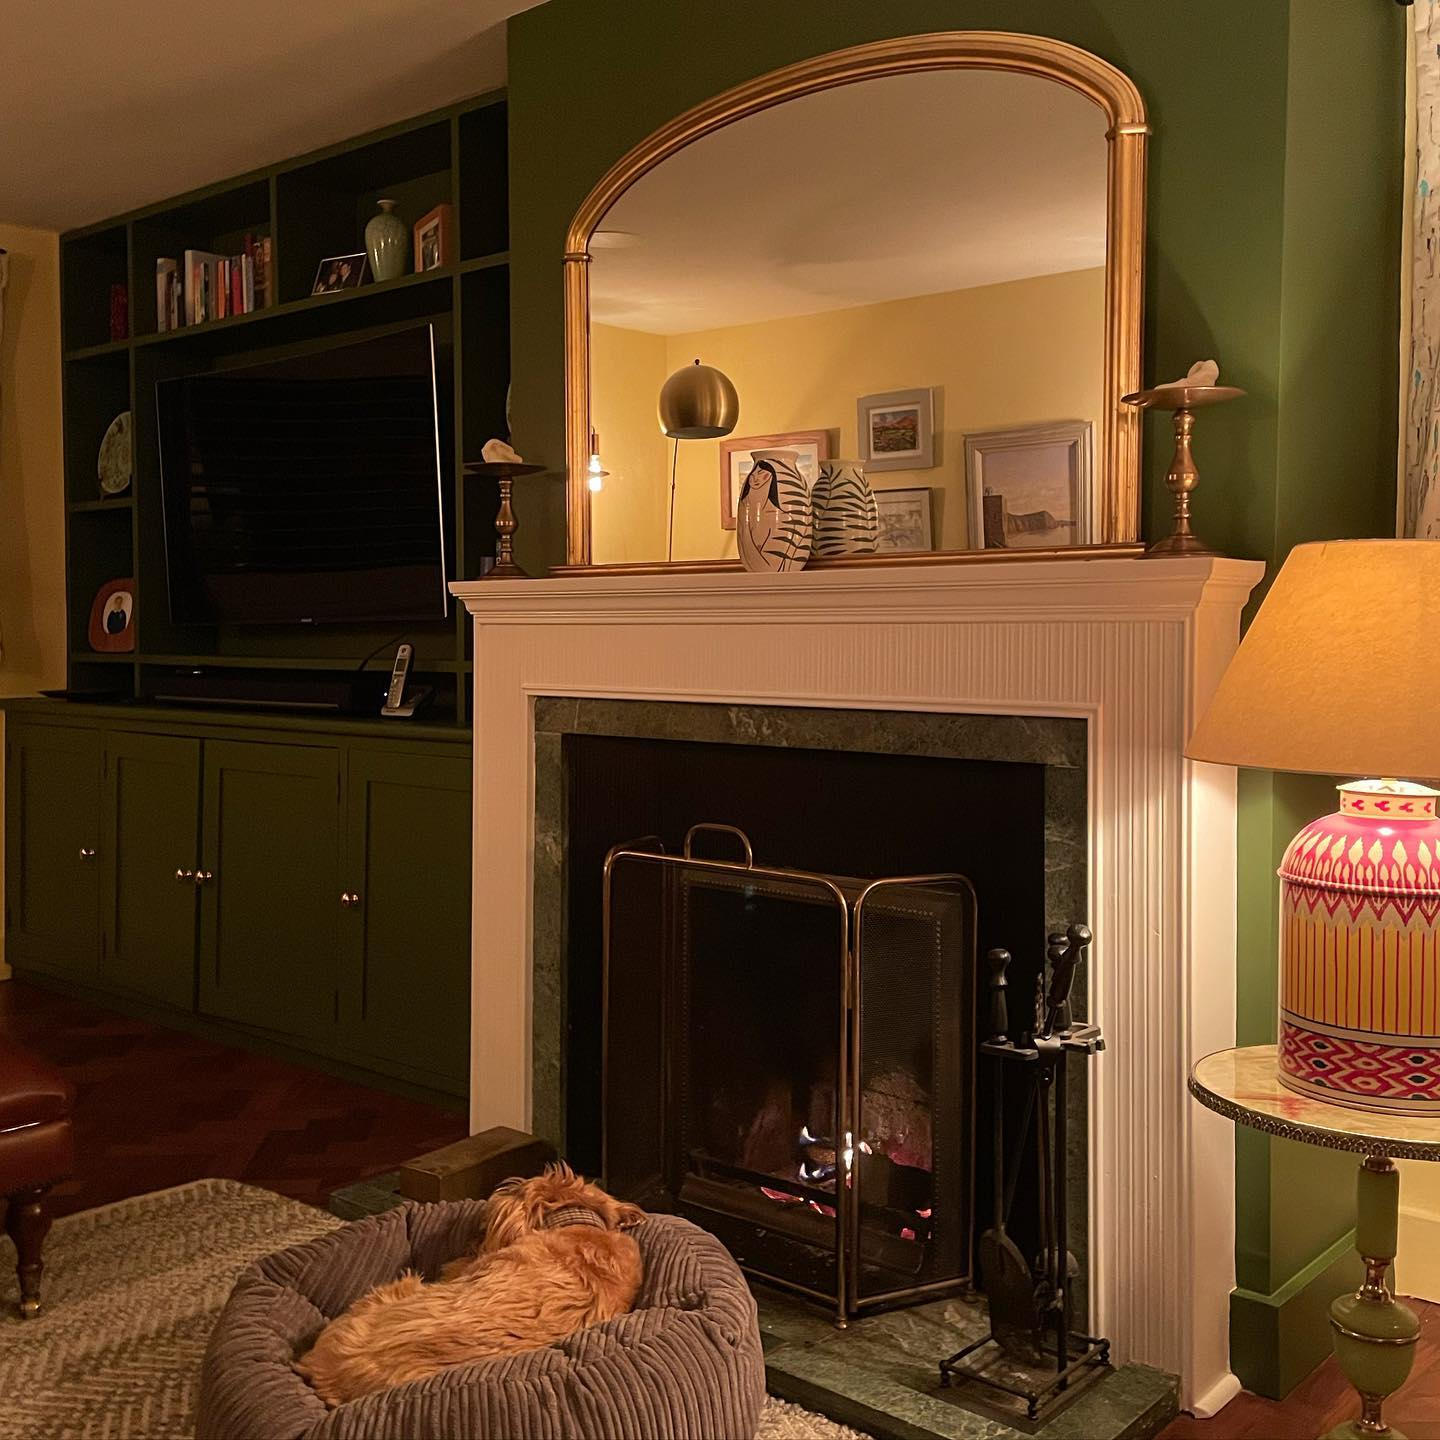 Our snug is a typical cottage proportioned room with small windows and a low ceiling. It's a perfect evening room so we went for a verdant rich green 'jewel beetle' as an accent and then an uplifting yellow 'Carys' on the remaining walls. You've got to love a fresh lick of paint! @littlegreenepaintcompany